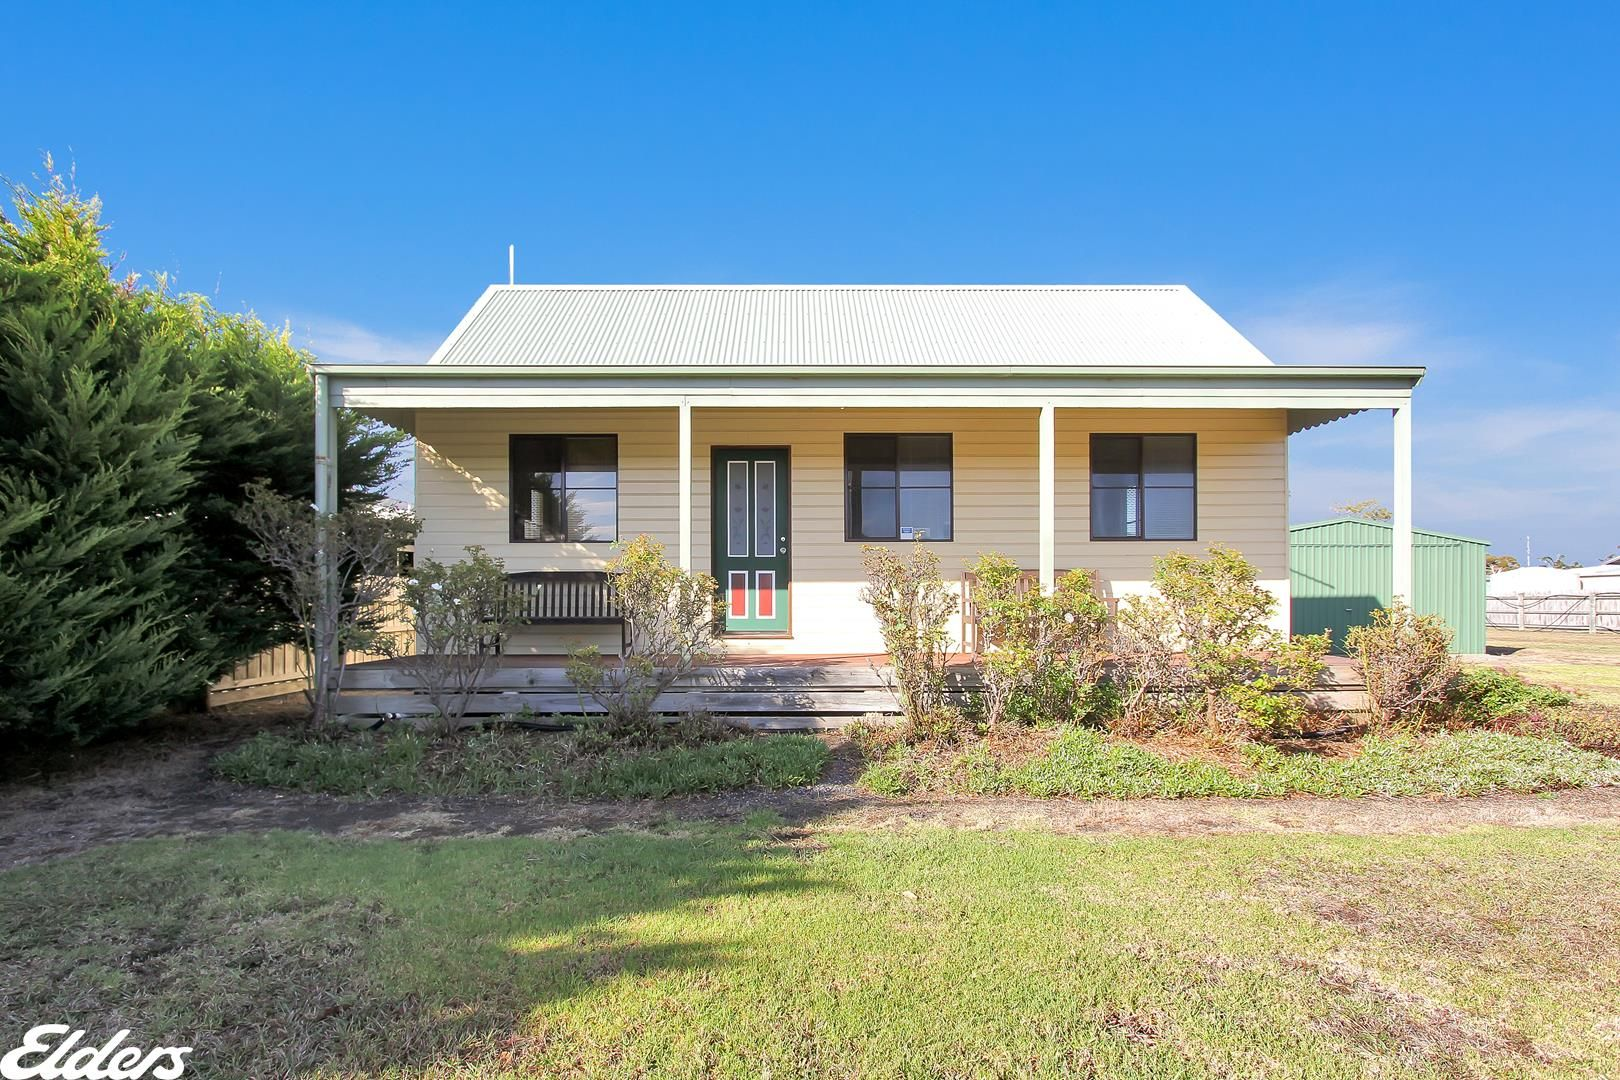 19 CHRISTOPHER STREET, Mcloughlins Beach VIC 3874, Image 2